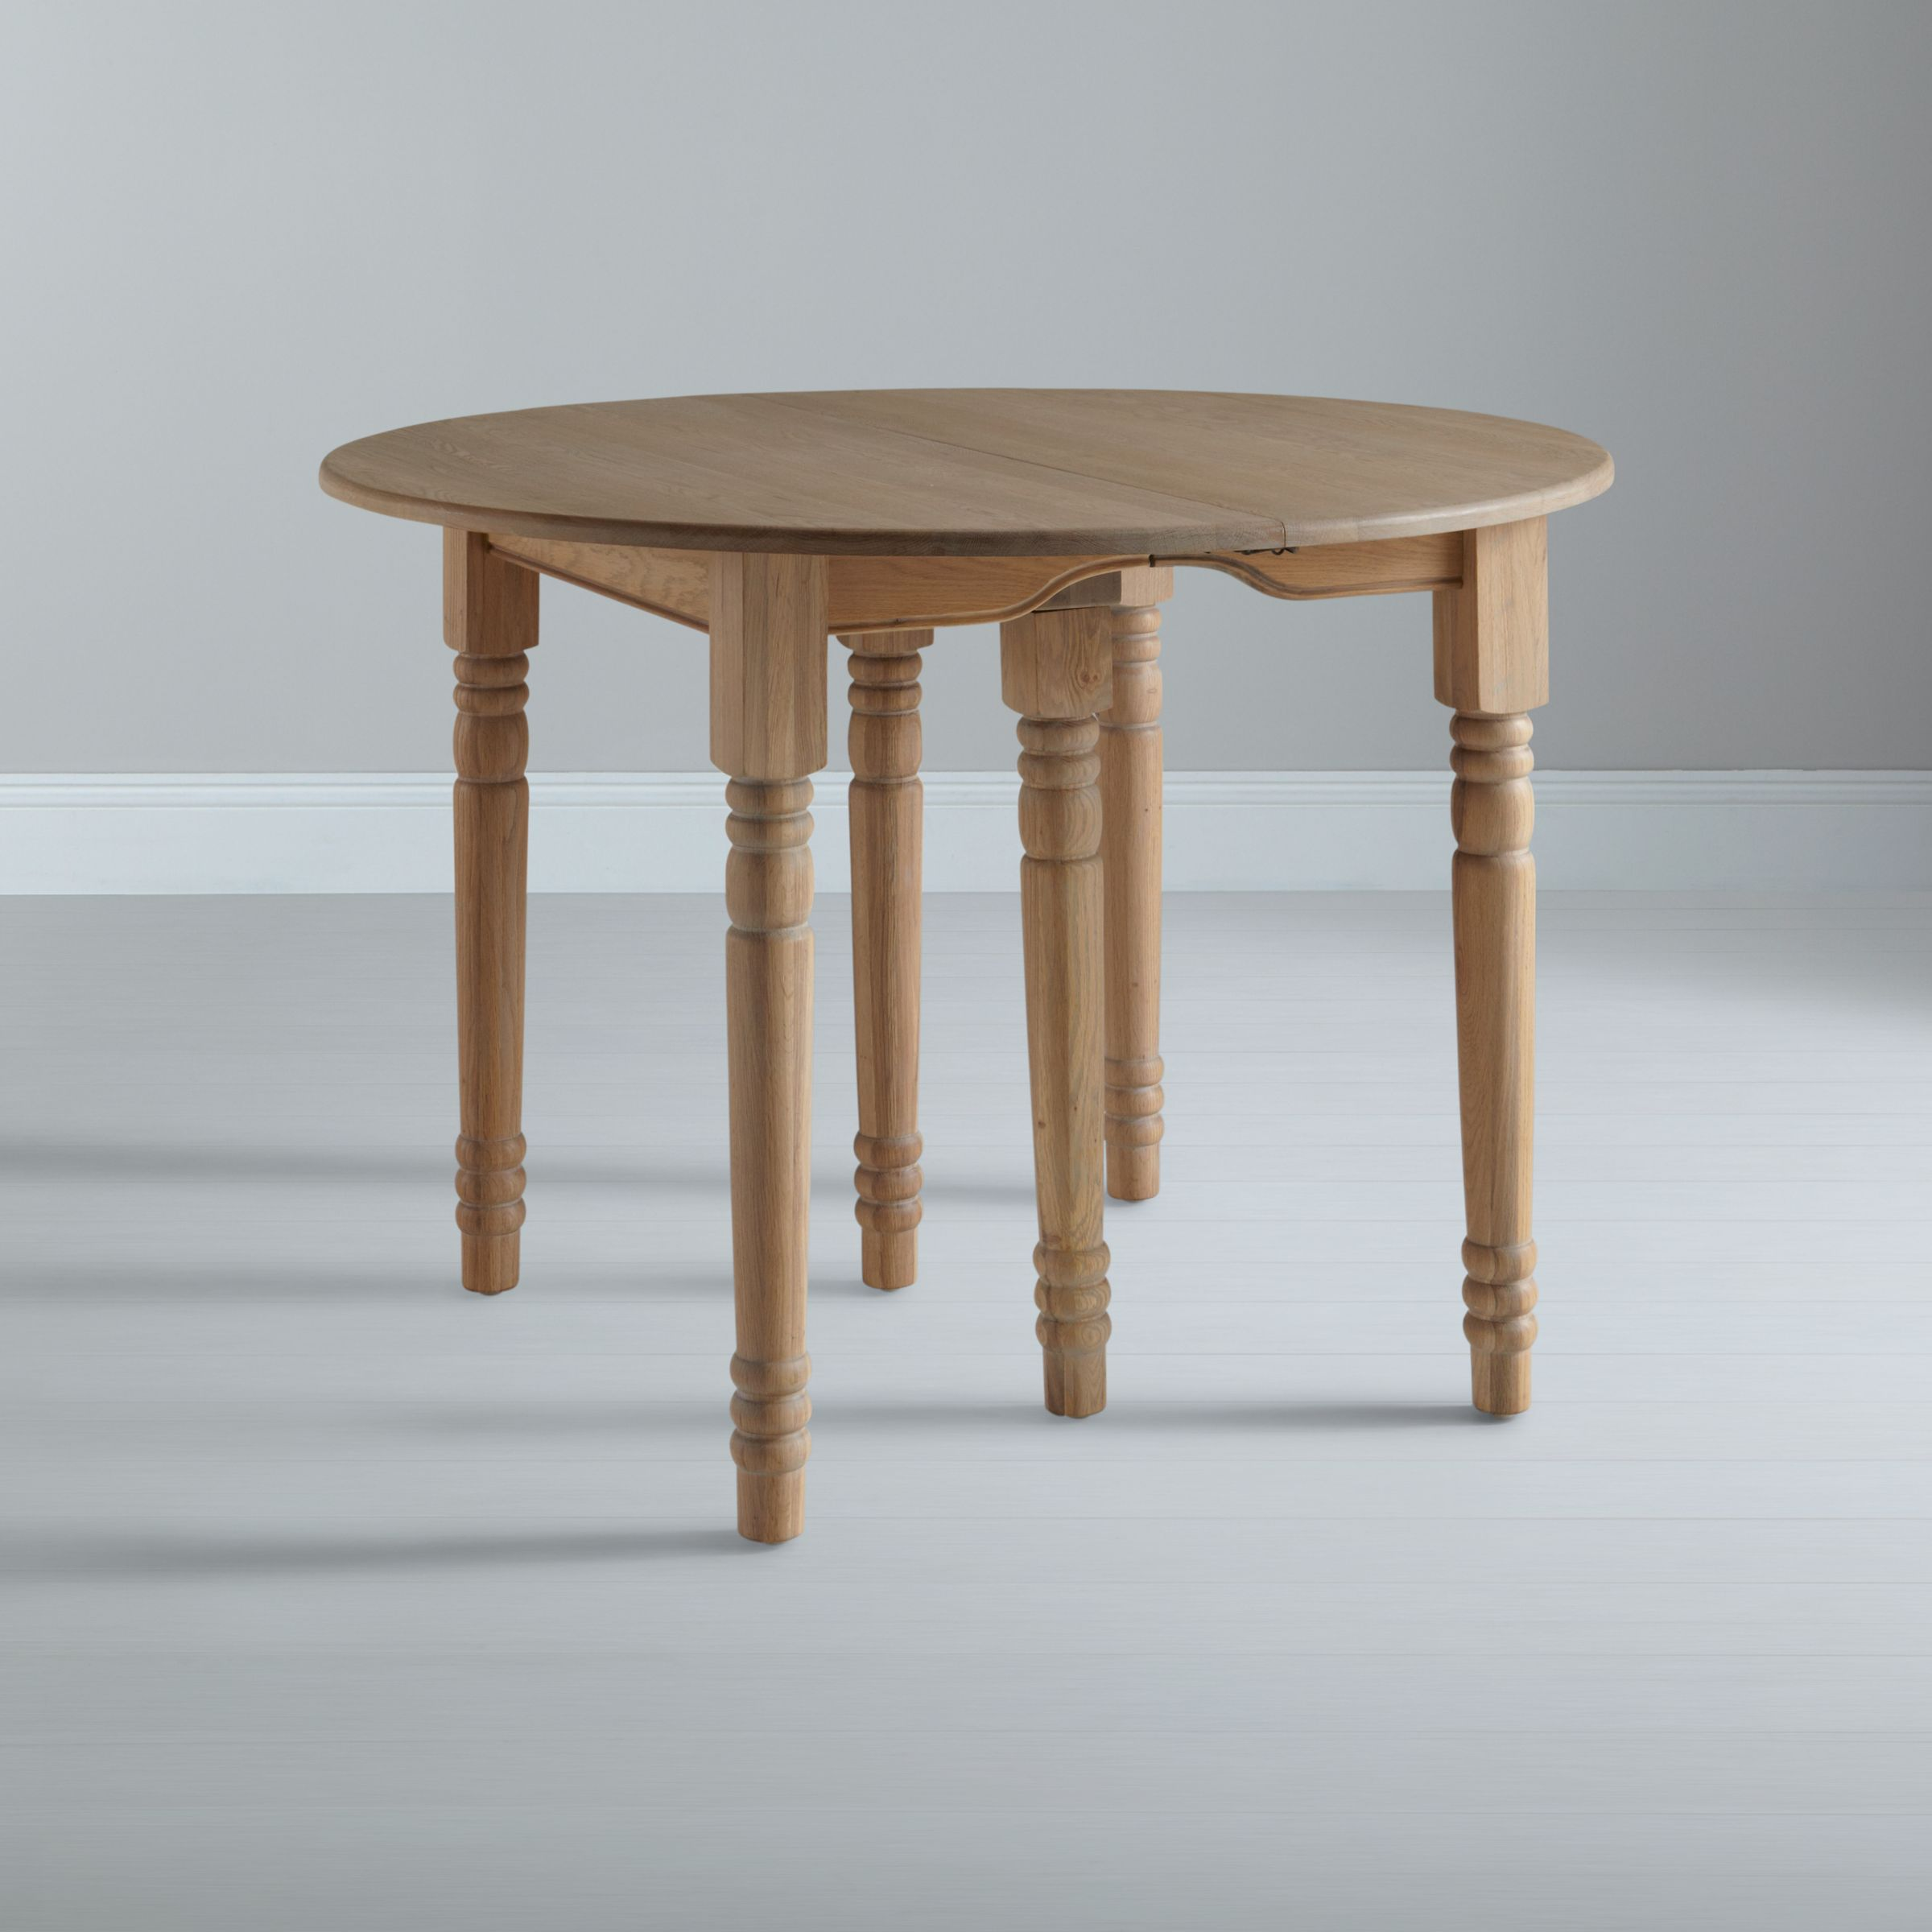 round extending dining table : 230969828 from www.comparestoreprices.co.uk size 2400 x 2400 jpeg 223kB